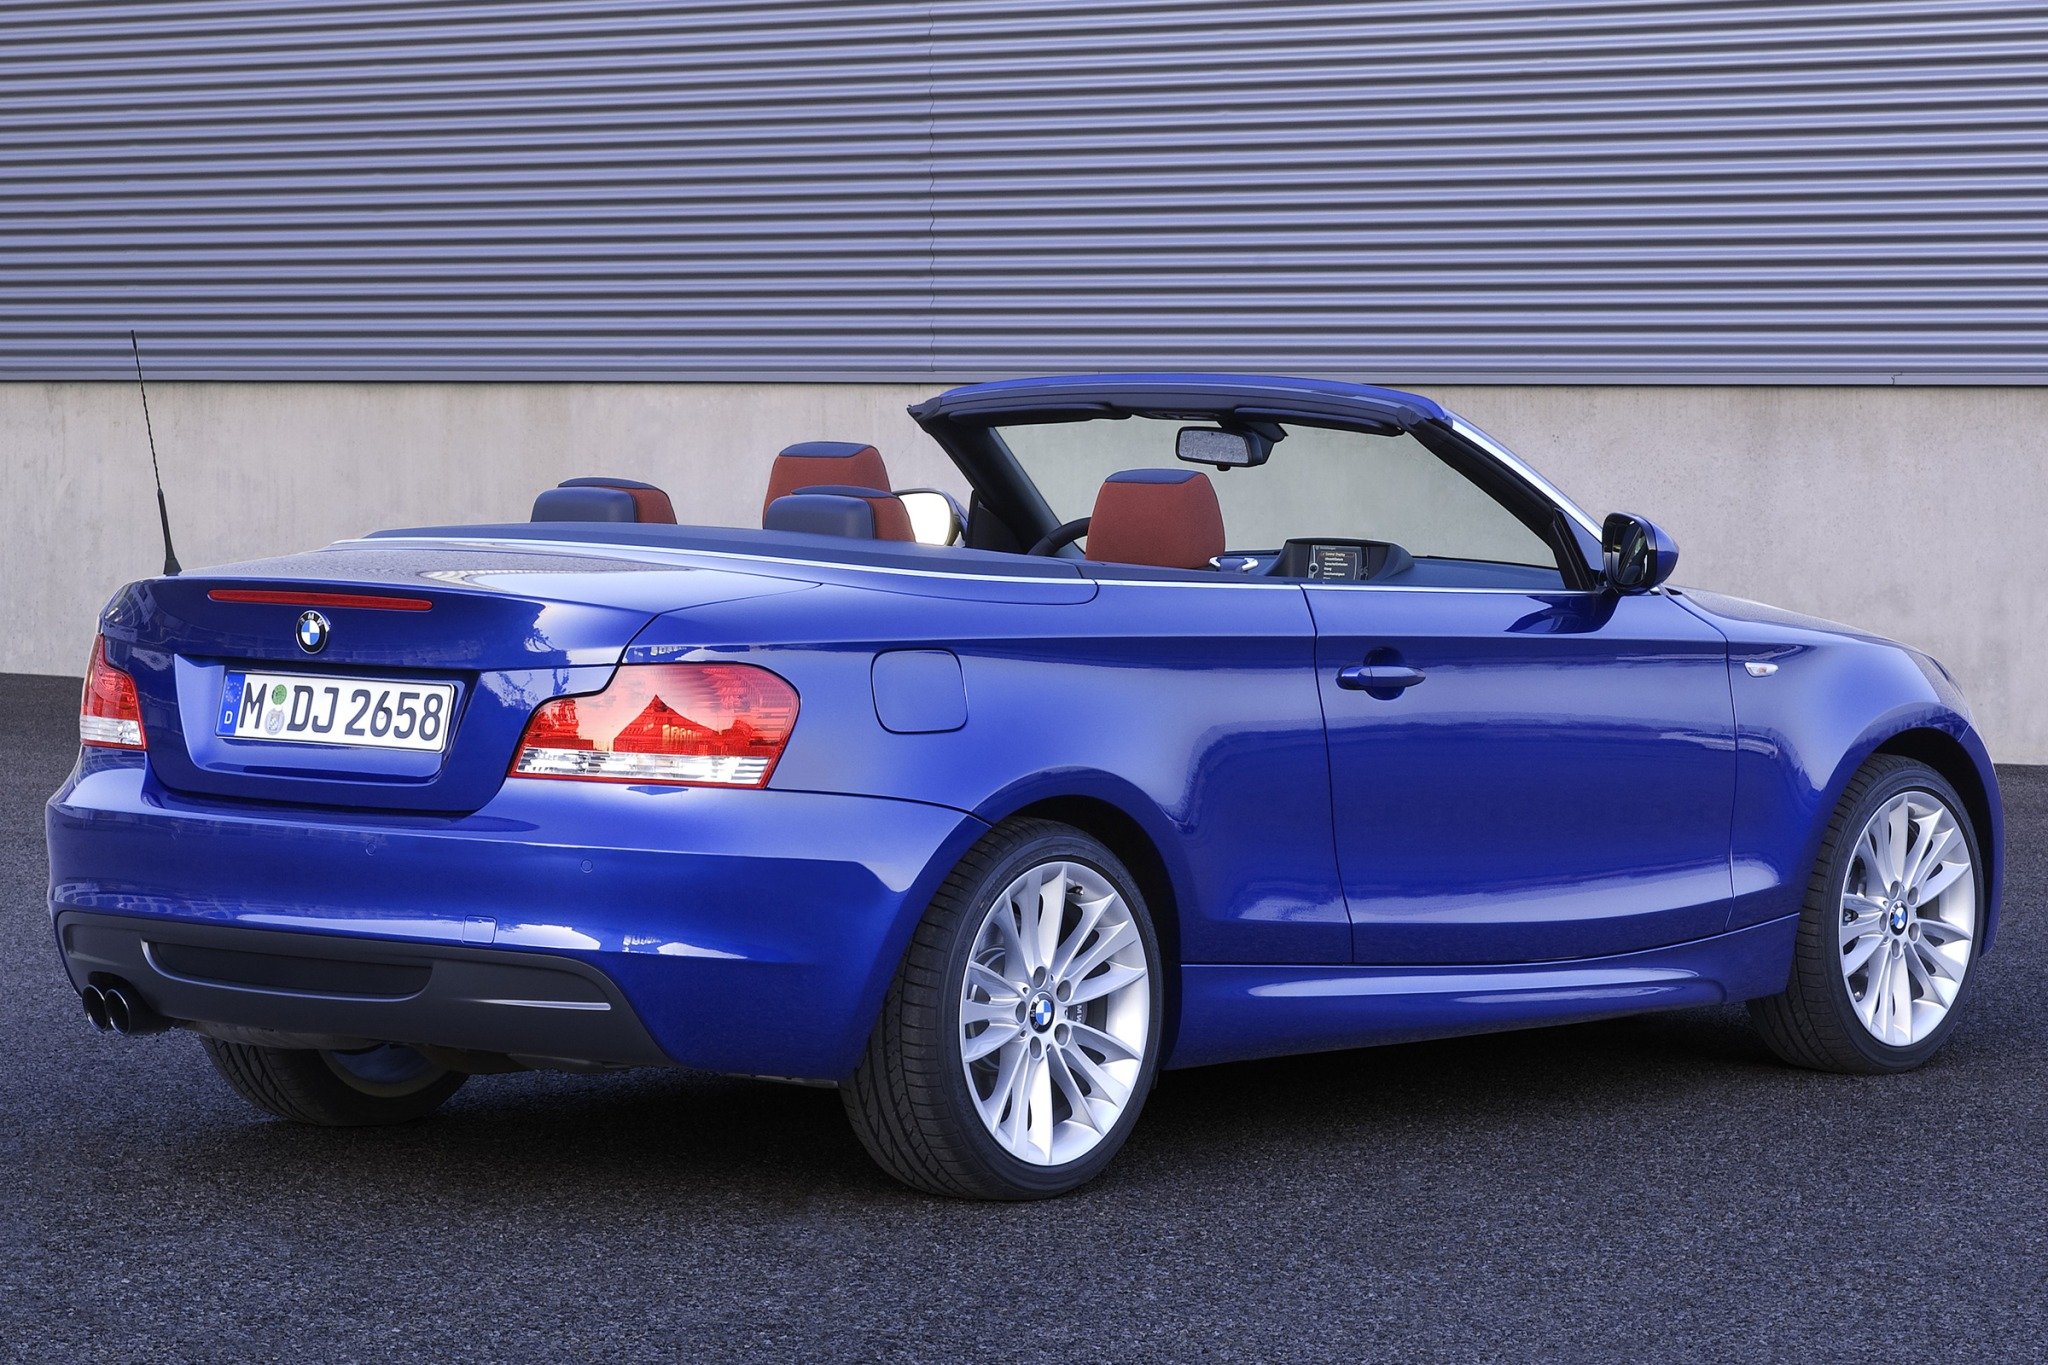 2010 Bmw 1 Series Image 6